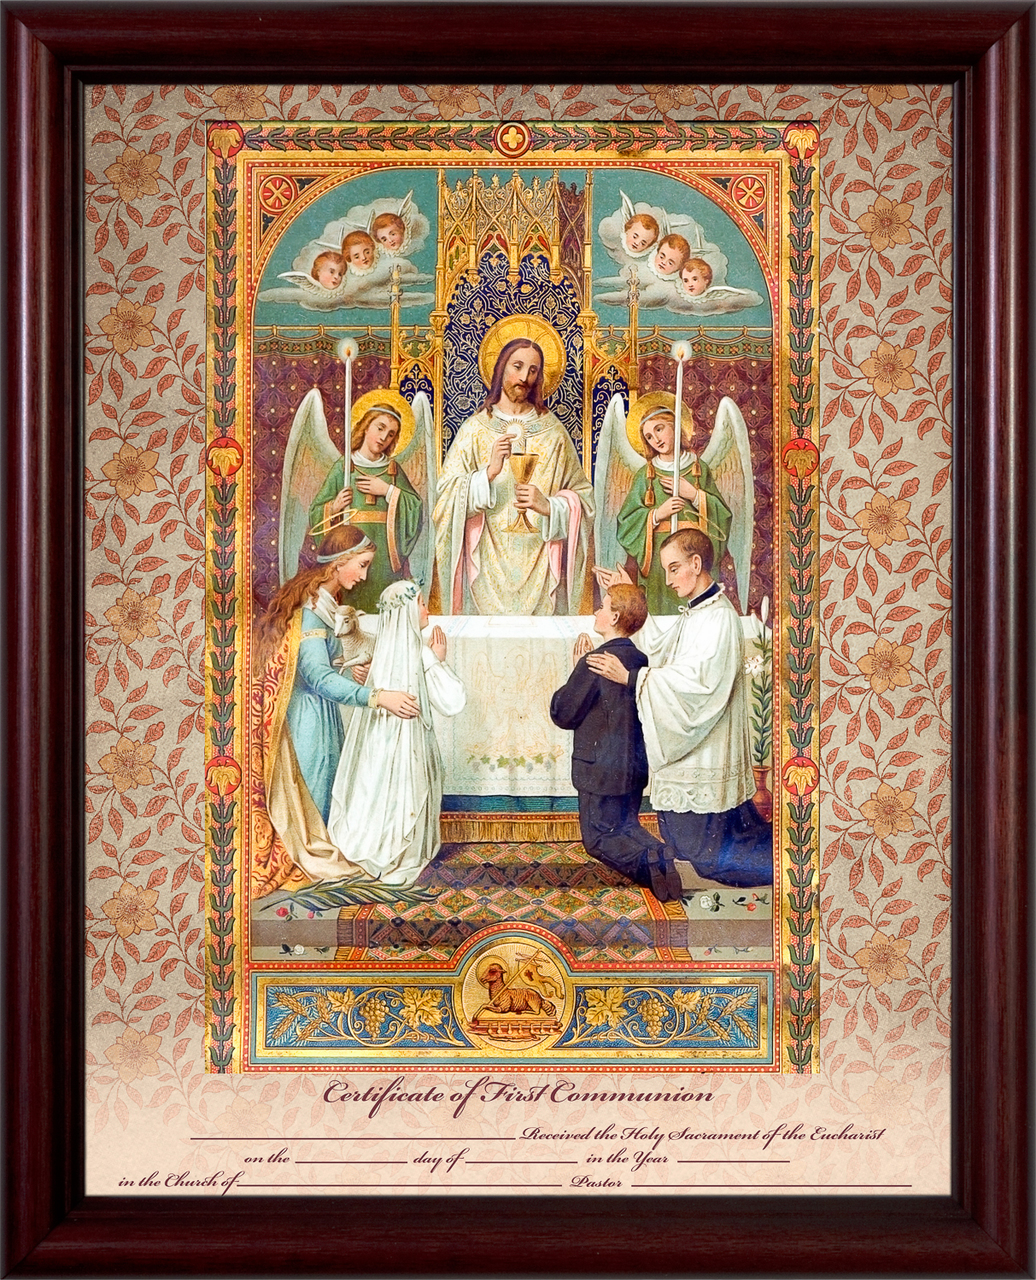 Traditional First Communion Sacrament Certificate w/Angels in Cherry Frame Wall Picture